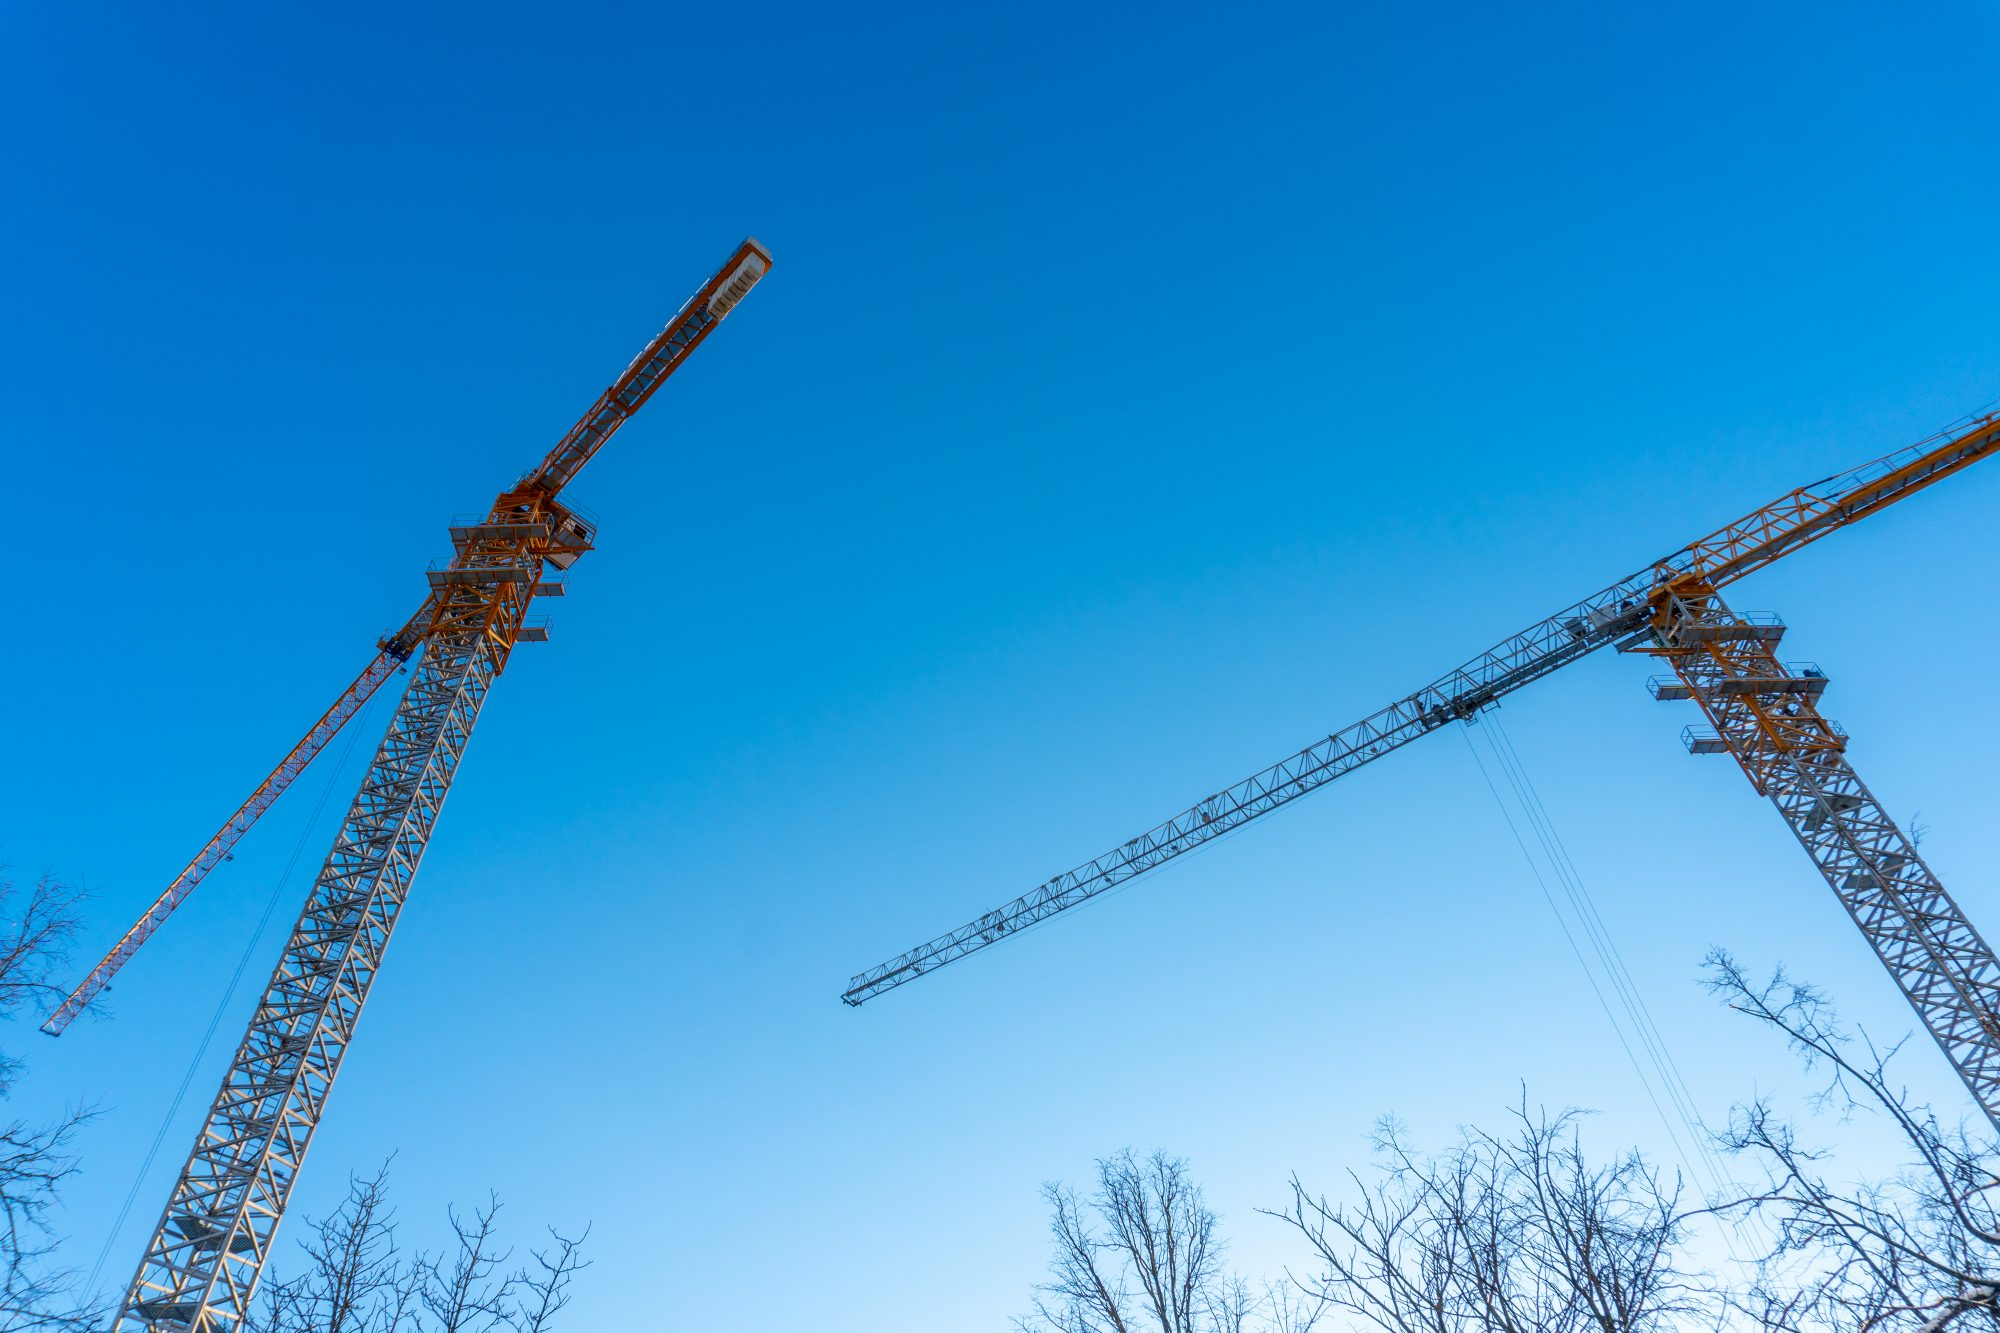 2021 predictions for construction technology